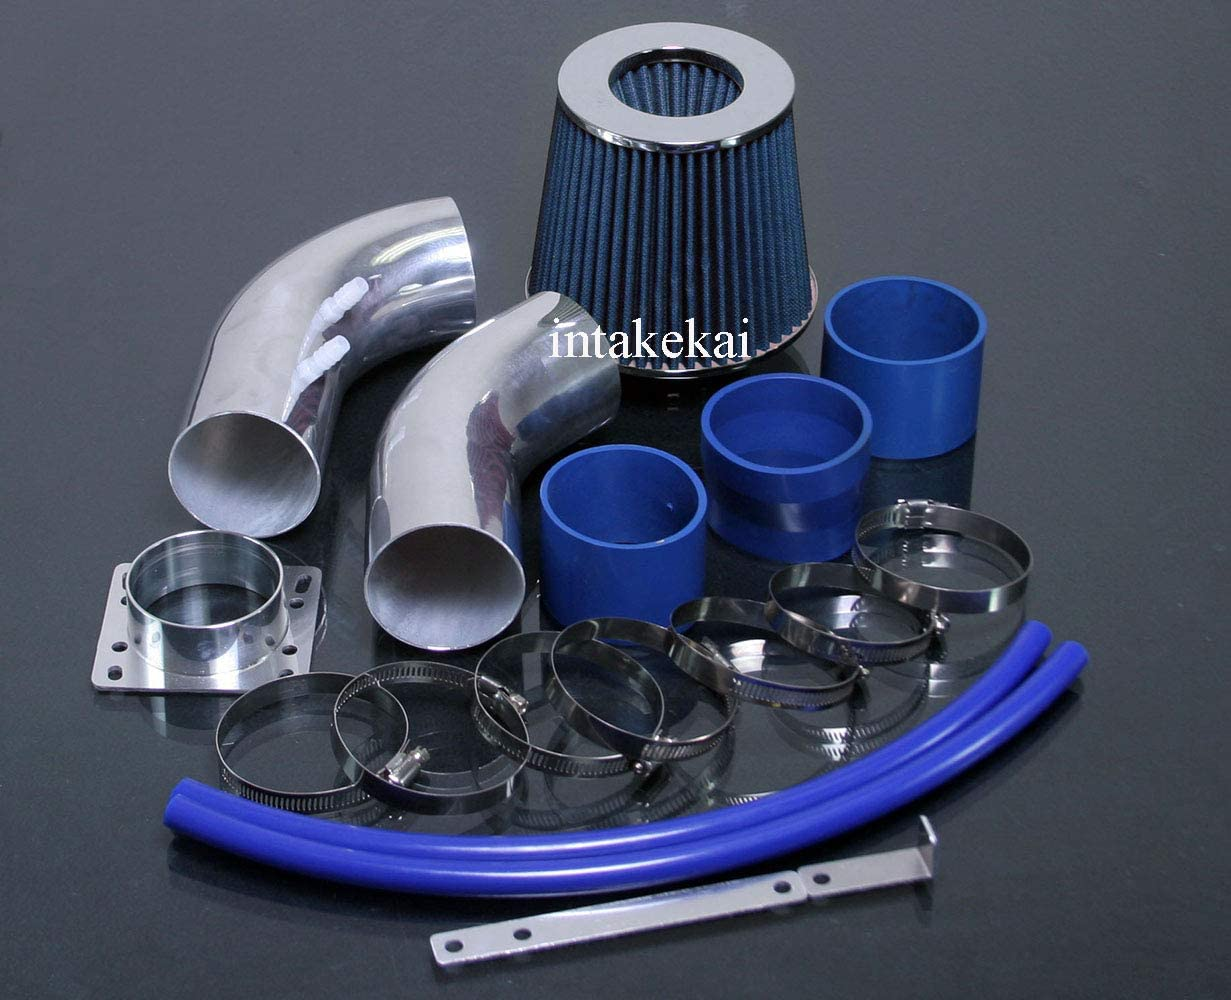 PERFORMANCE AIR INTAKE KIT FIT 1988-1995 Toyota 4runner//Tacoma//T100 Pickup V6 3.0l ENGINE BLUE